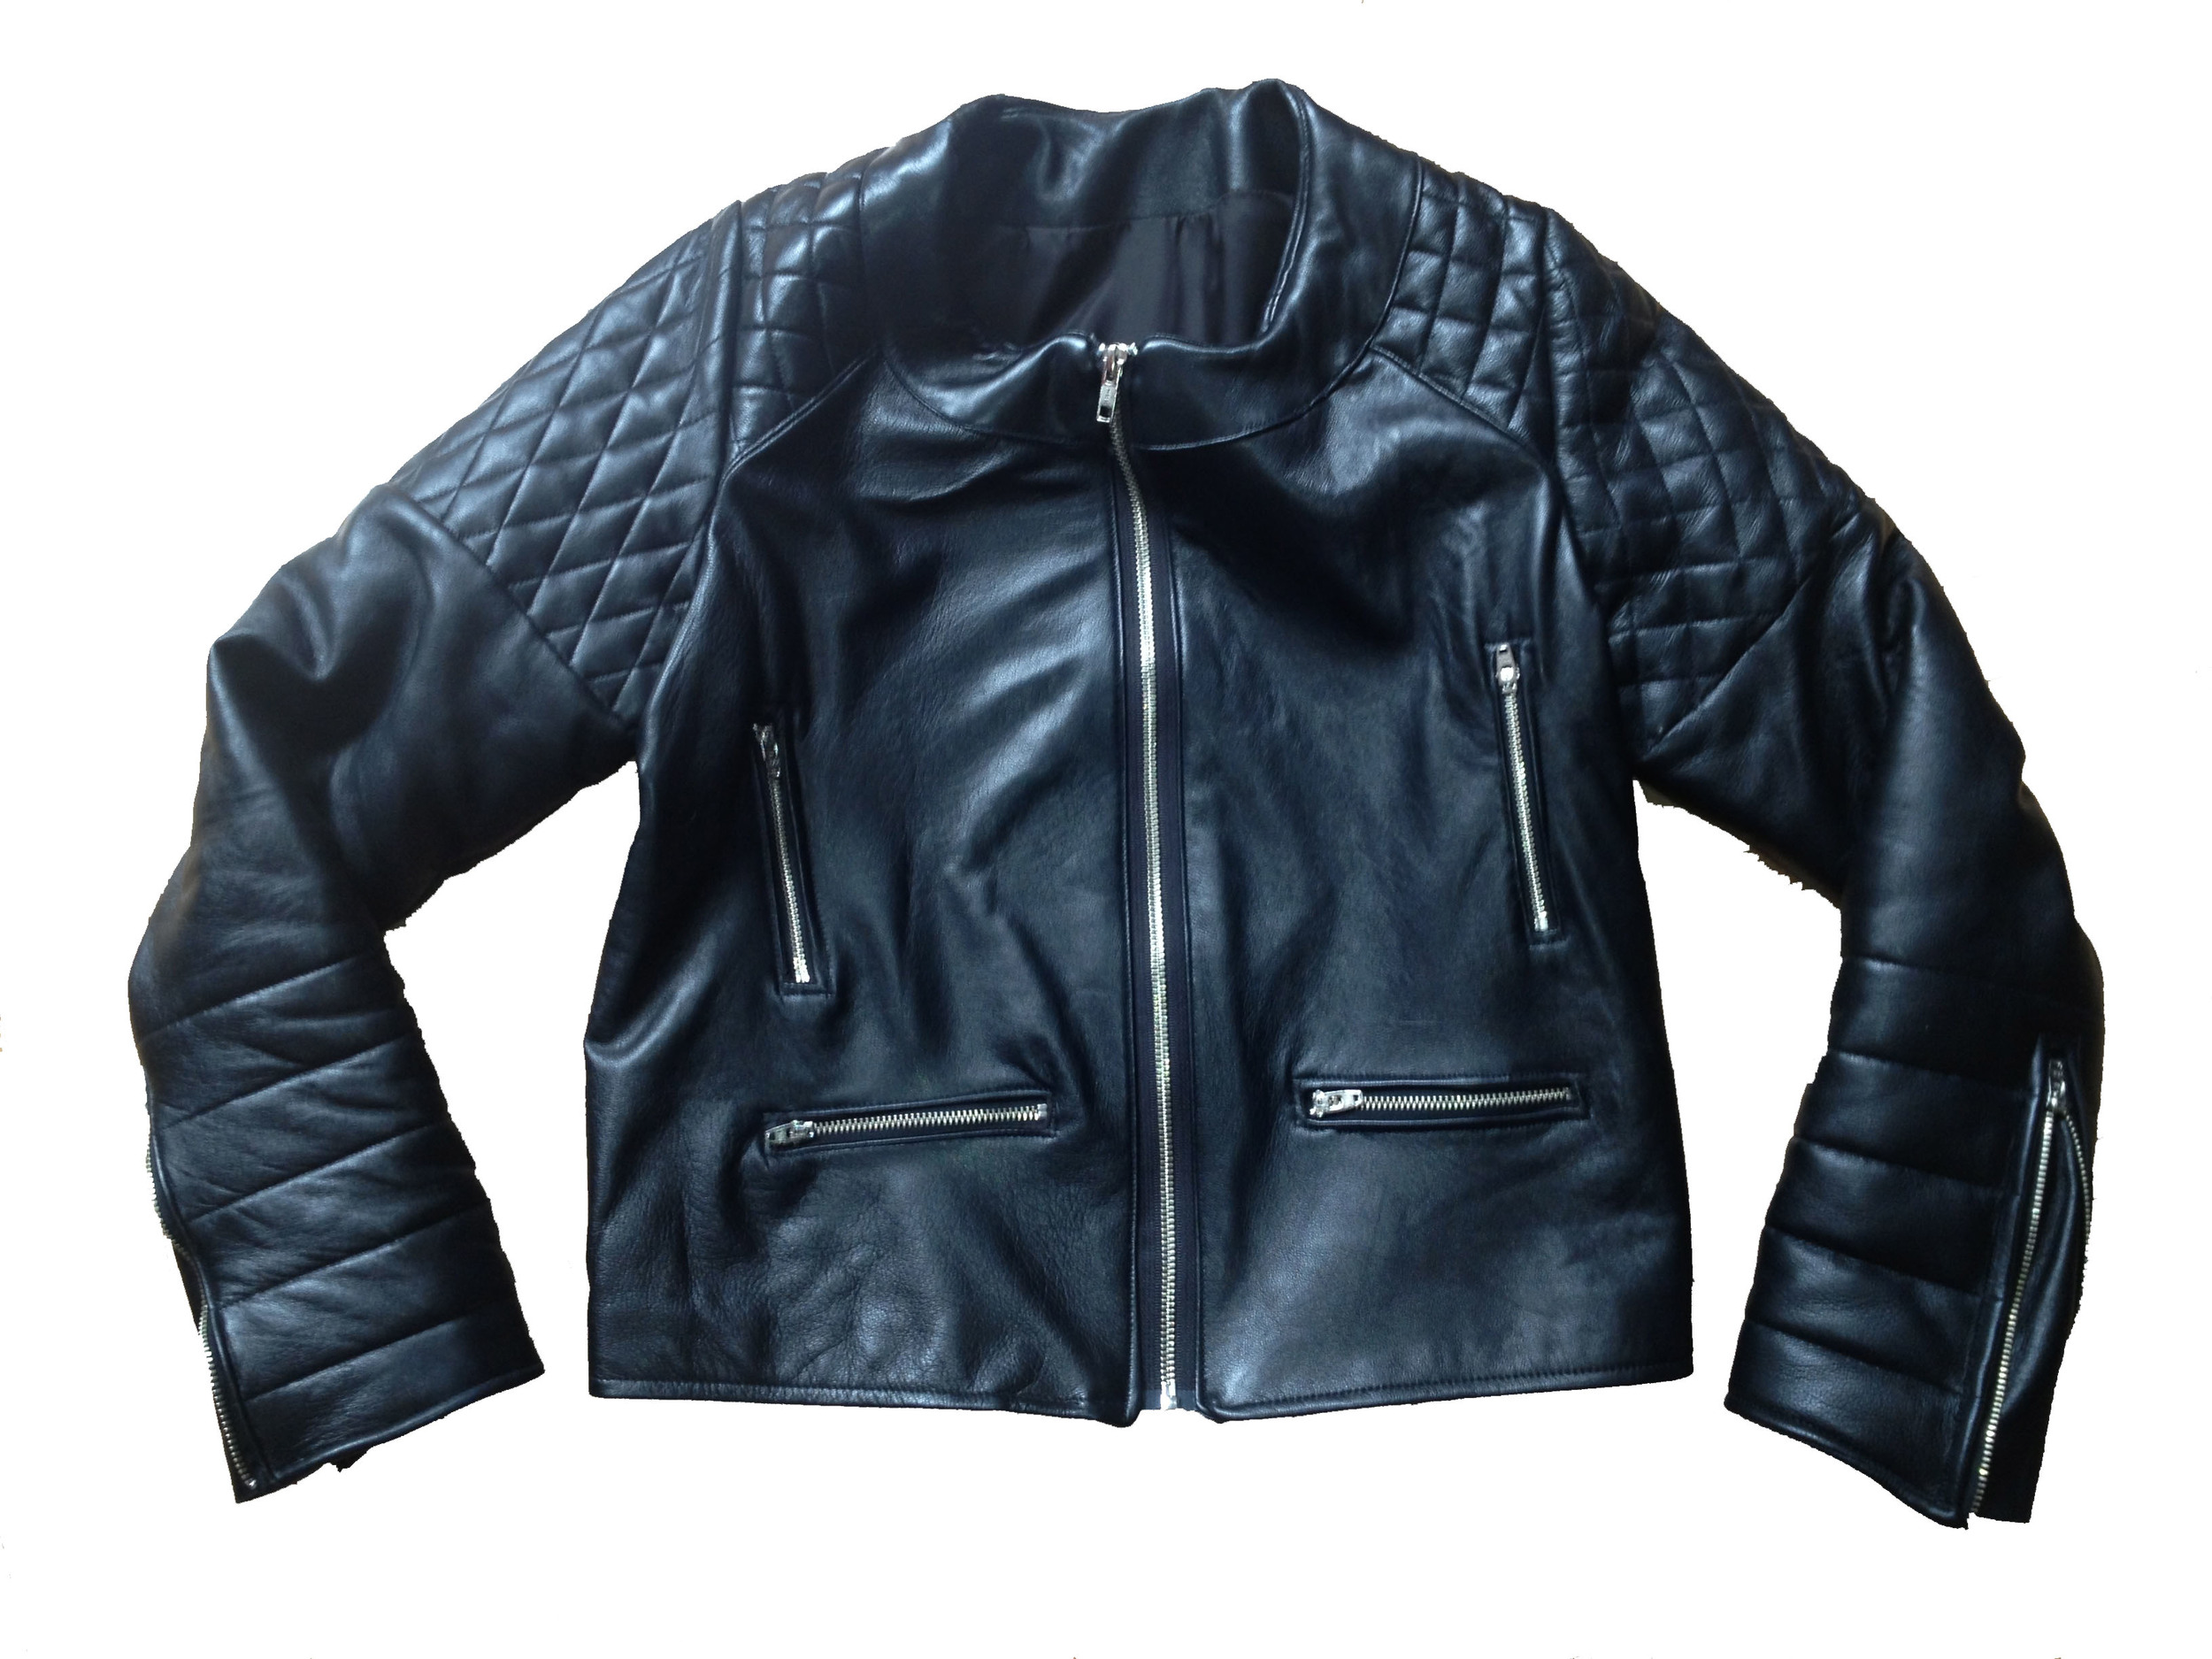 Leather Jacket Front Lay Down.jpg